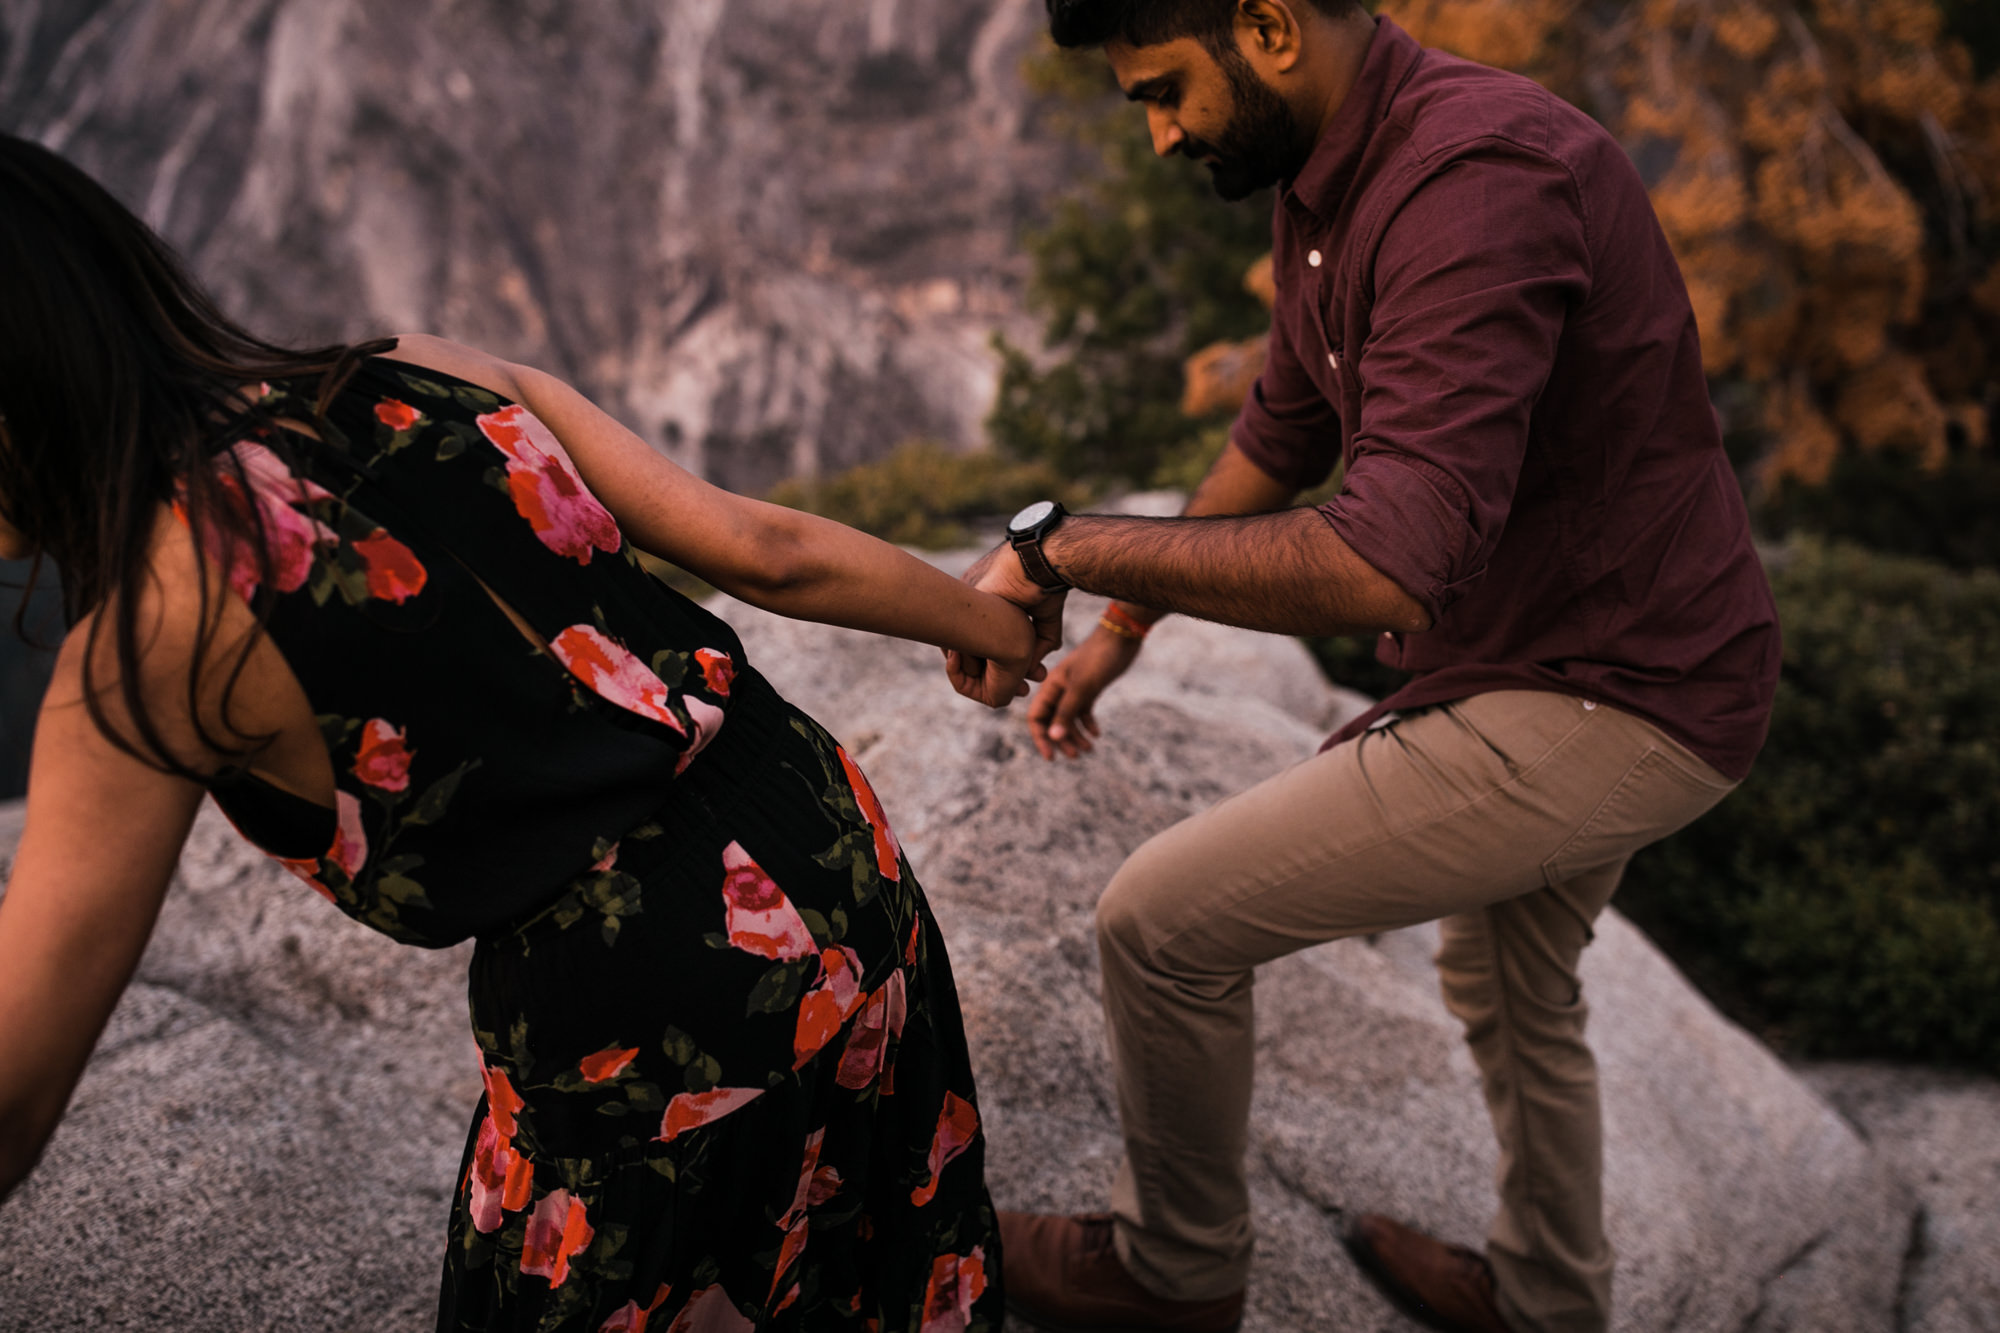 dreema + jay's adventurous engagement session + surprise proposal | yosemite valley + glacier point, yosemite national park | destination elopement photographer | www.thehearnes.com